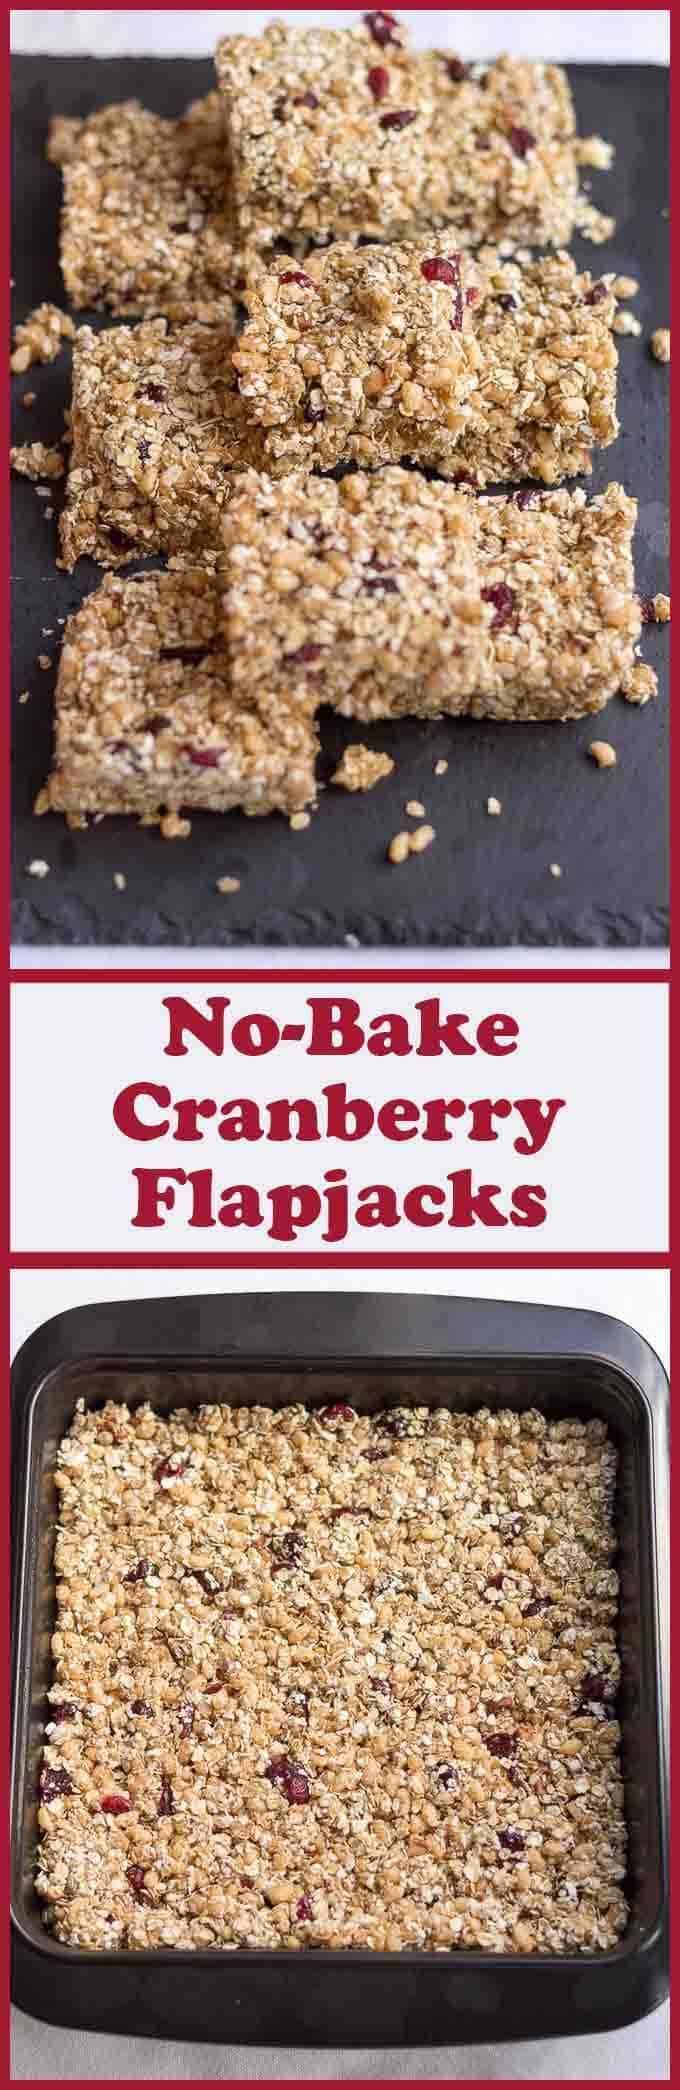 These delicious, chewy, no bake cranberry flapjacks are just packed full with all the goodness of porridge oats, pecan nuts, almond butter and cranberries. Great as little treats, and, easy to make too, because, absolutely no baking is required!